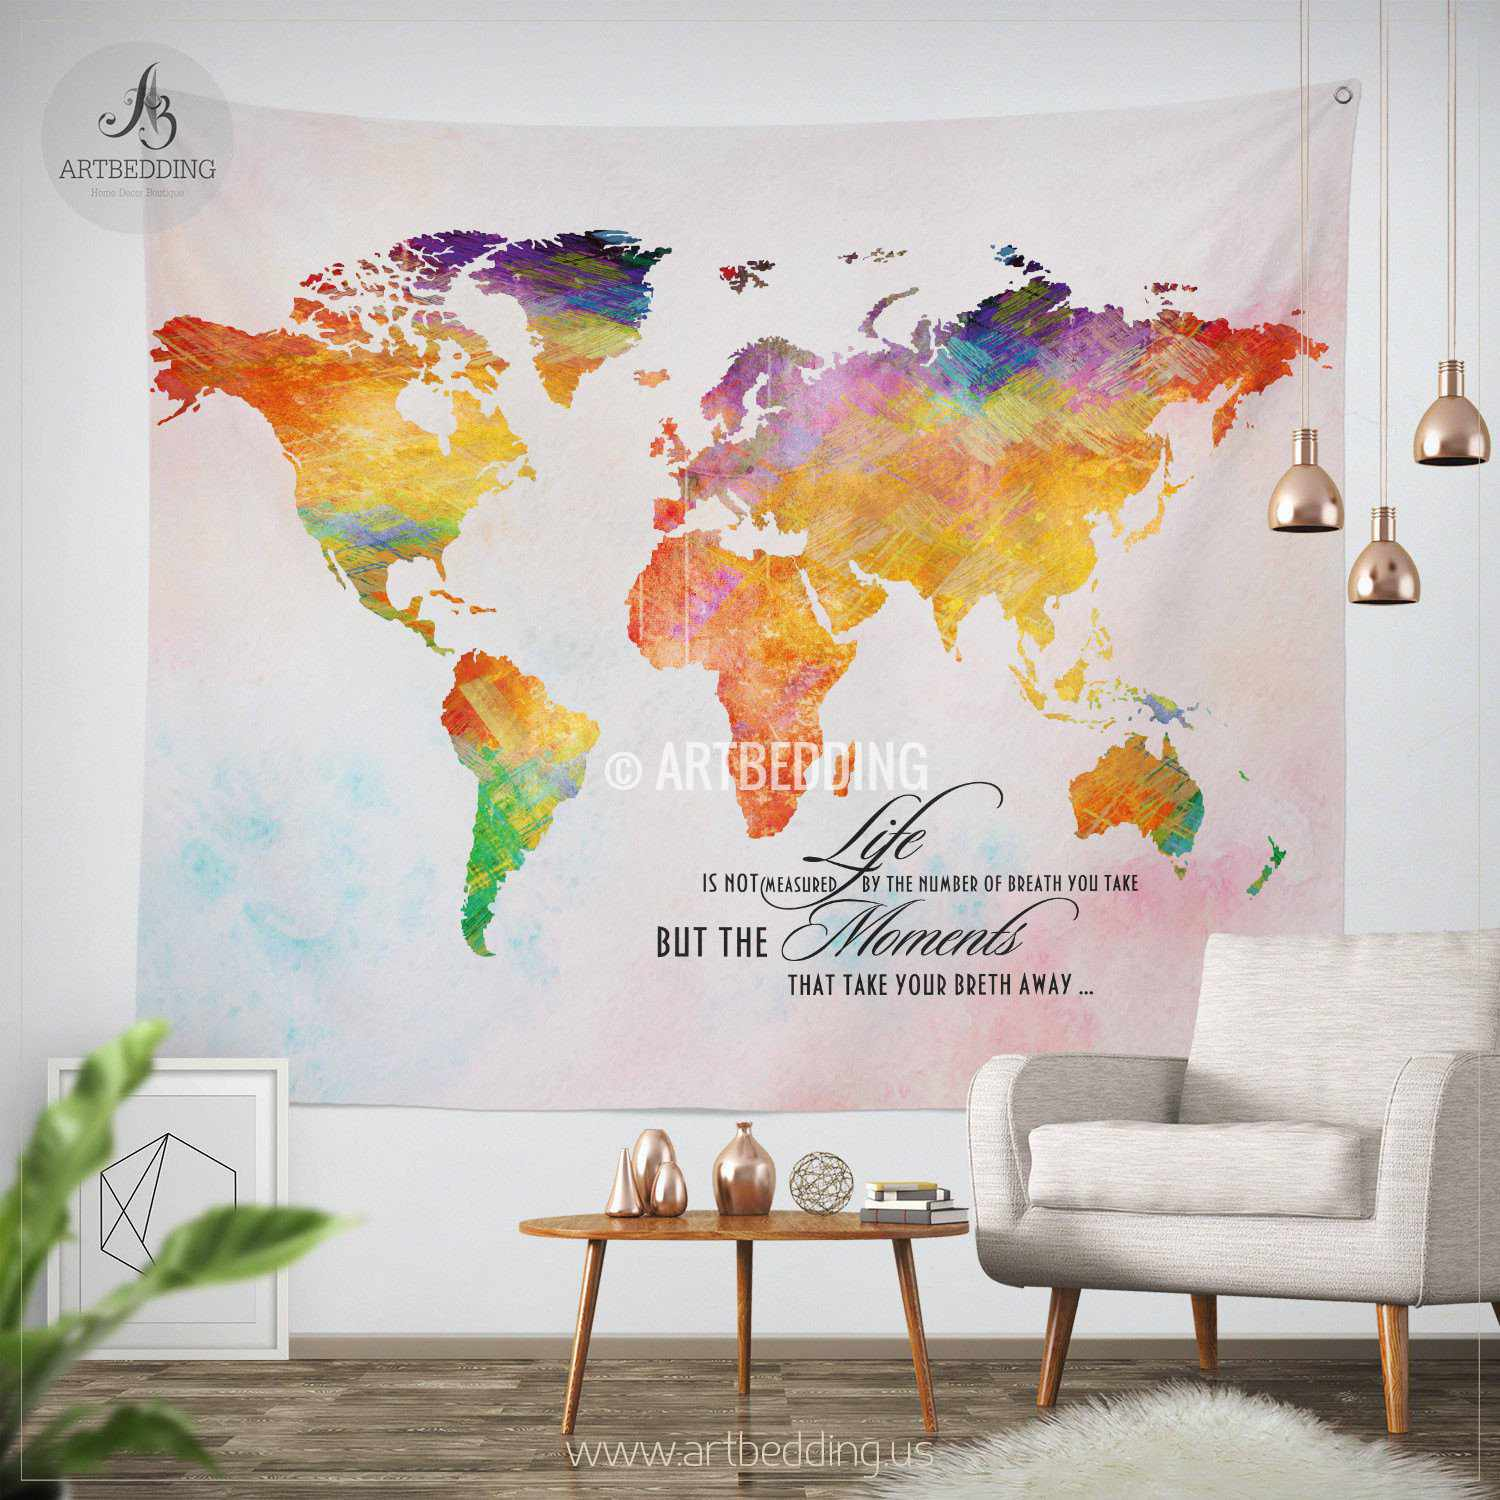 Boho world map tapestry watercolor life quote wall tapestry boho tapestry urban graffiti wall tapestry inspirational quote wall decor hippie tapestry wall gumiabroncs Gallery